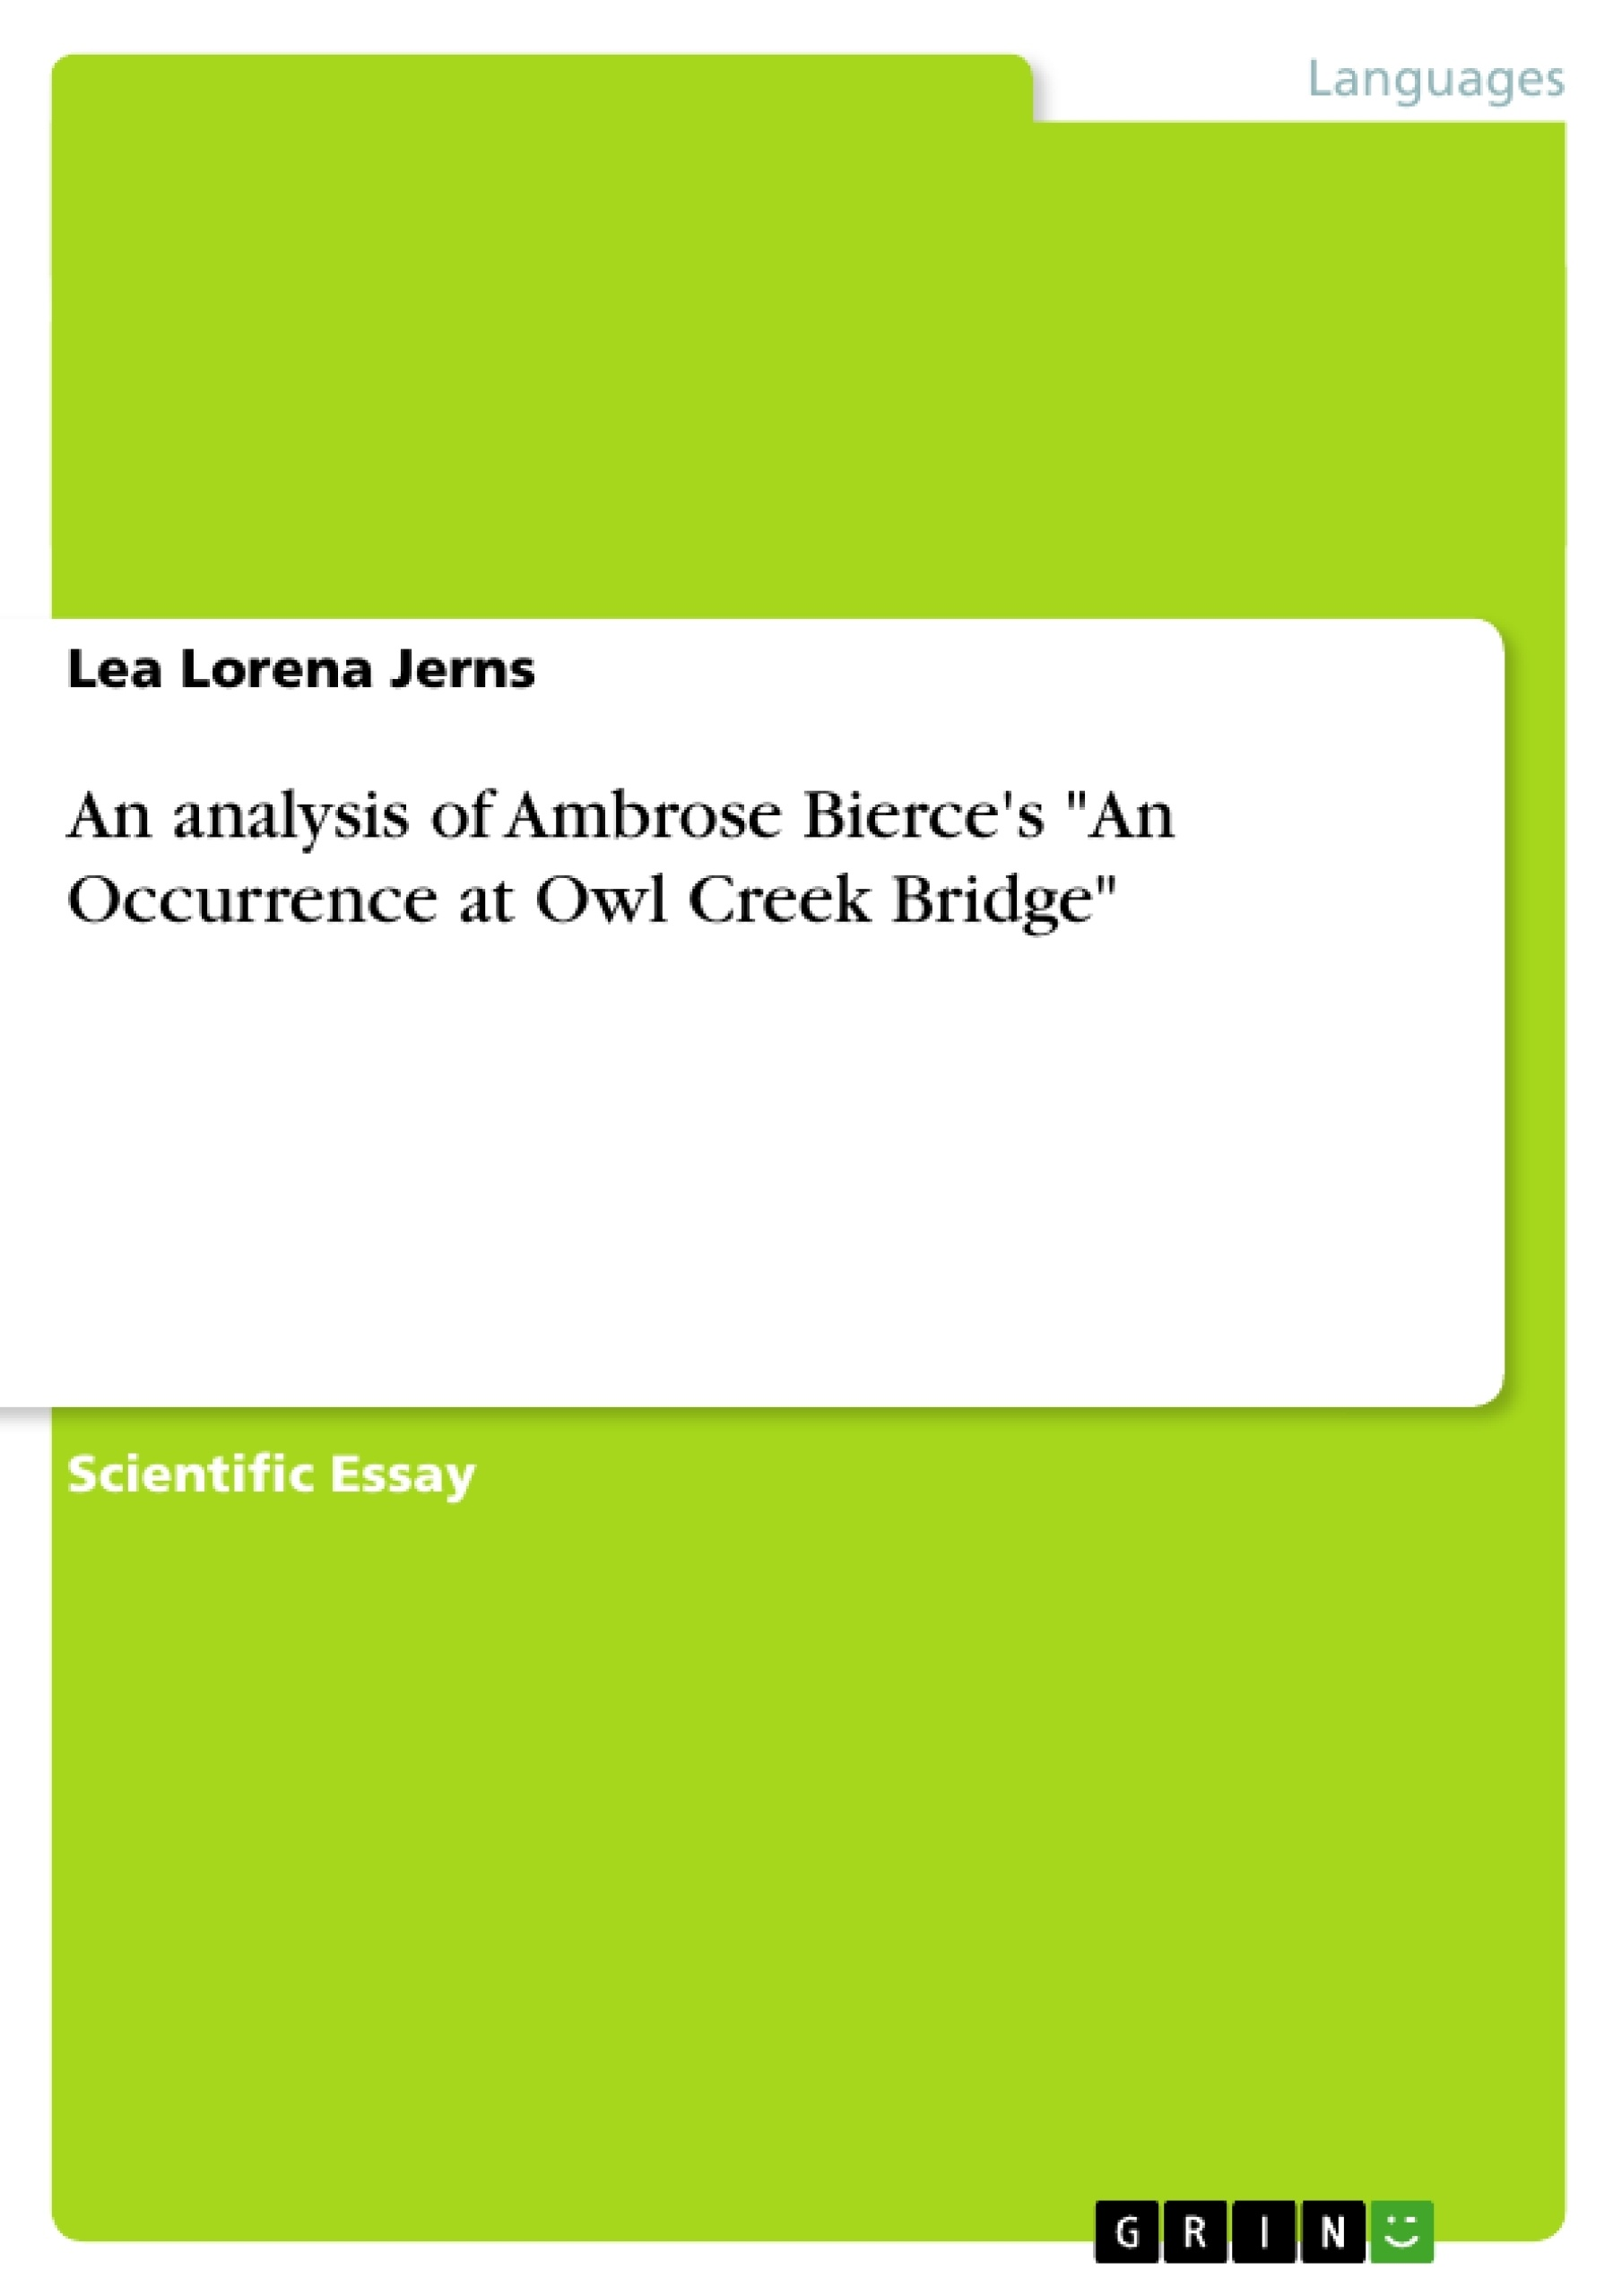 an analysis of ambrose bierce s an occurrence at owl creek bridge an analysis of ambrose bierce s an occurrence at owl creek bridge publish your master s thesis bachelor s thesis essay or term paper